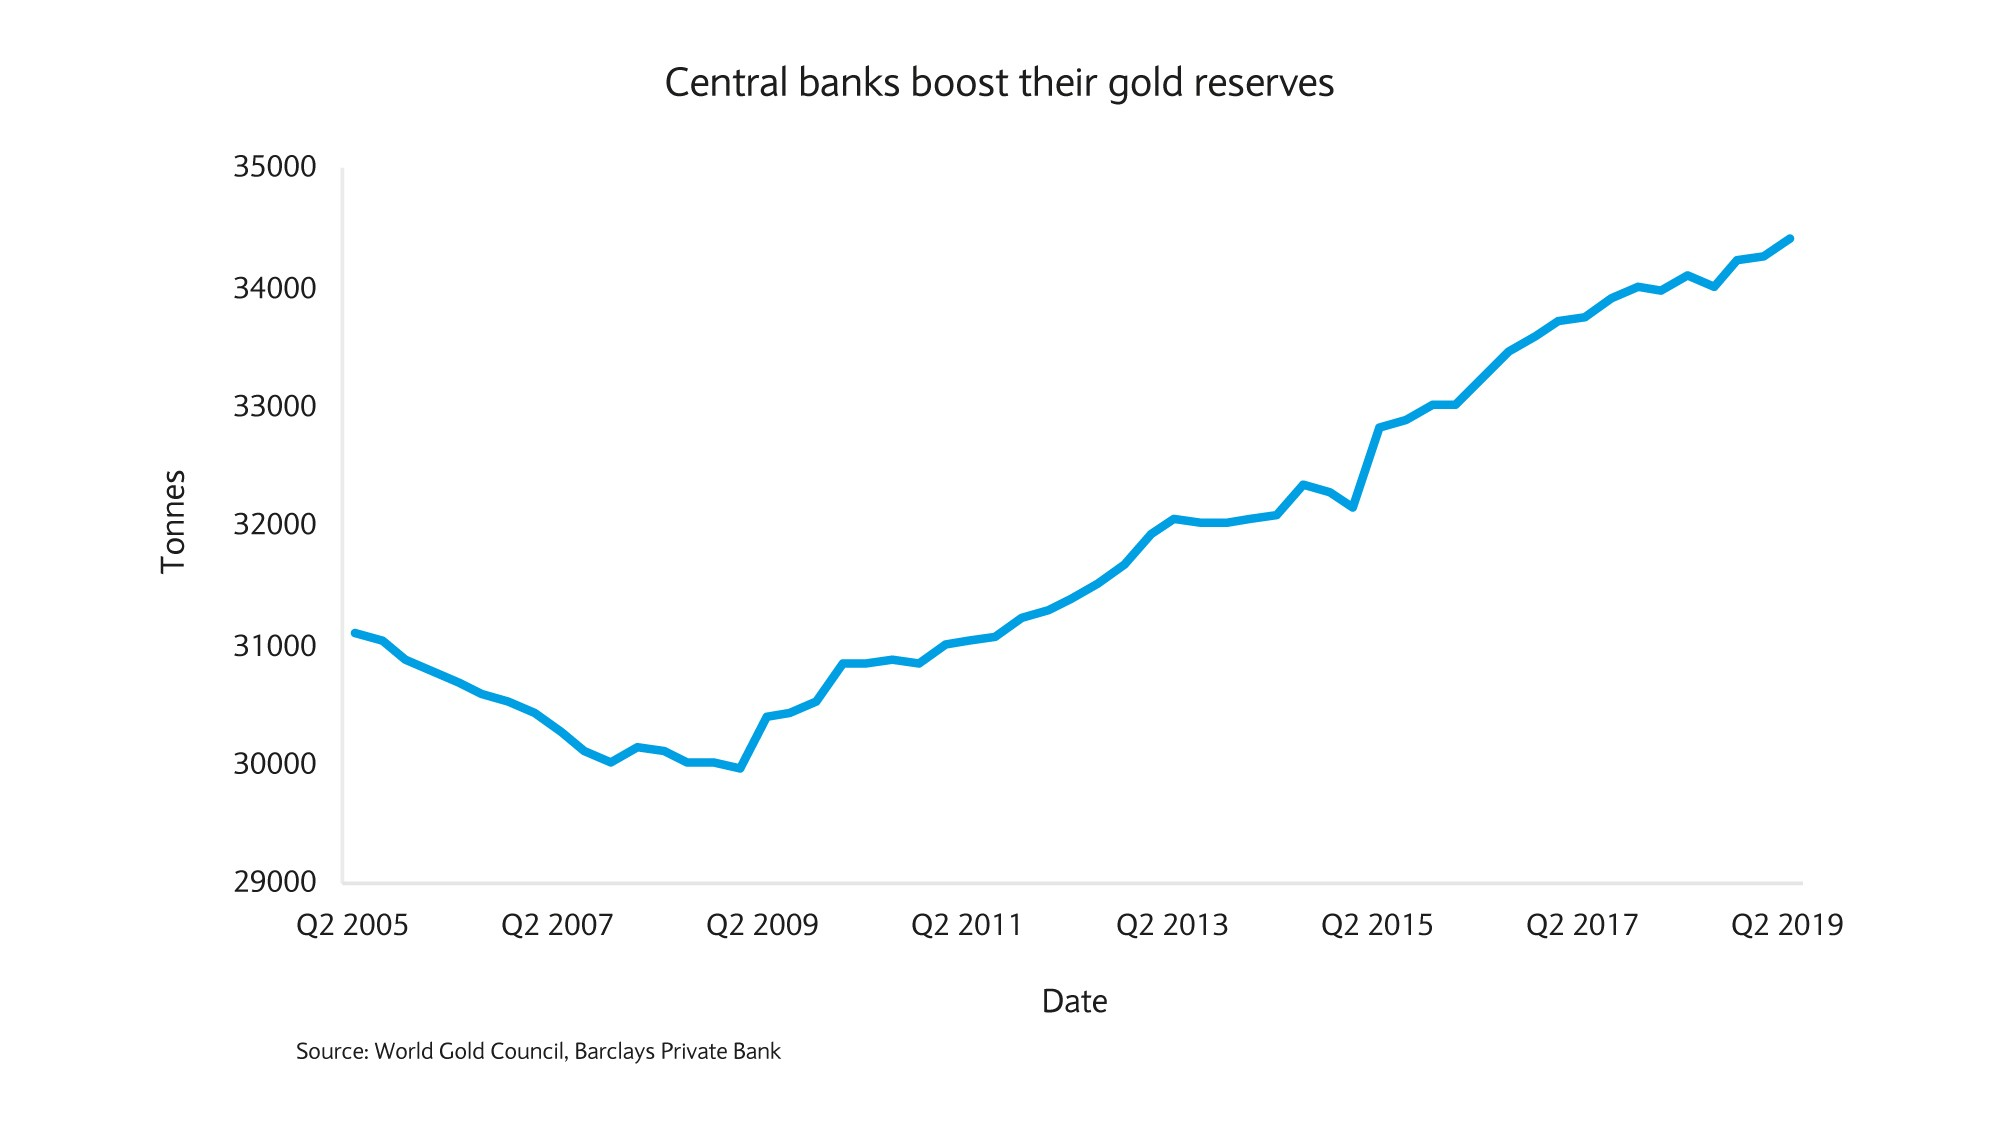 Central banks boost gold reserves